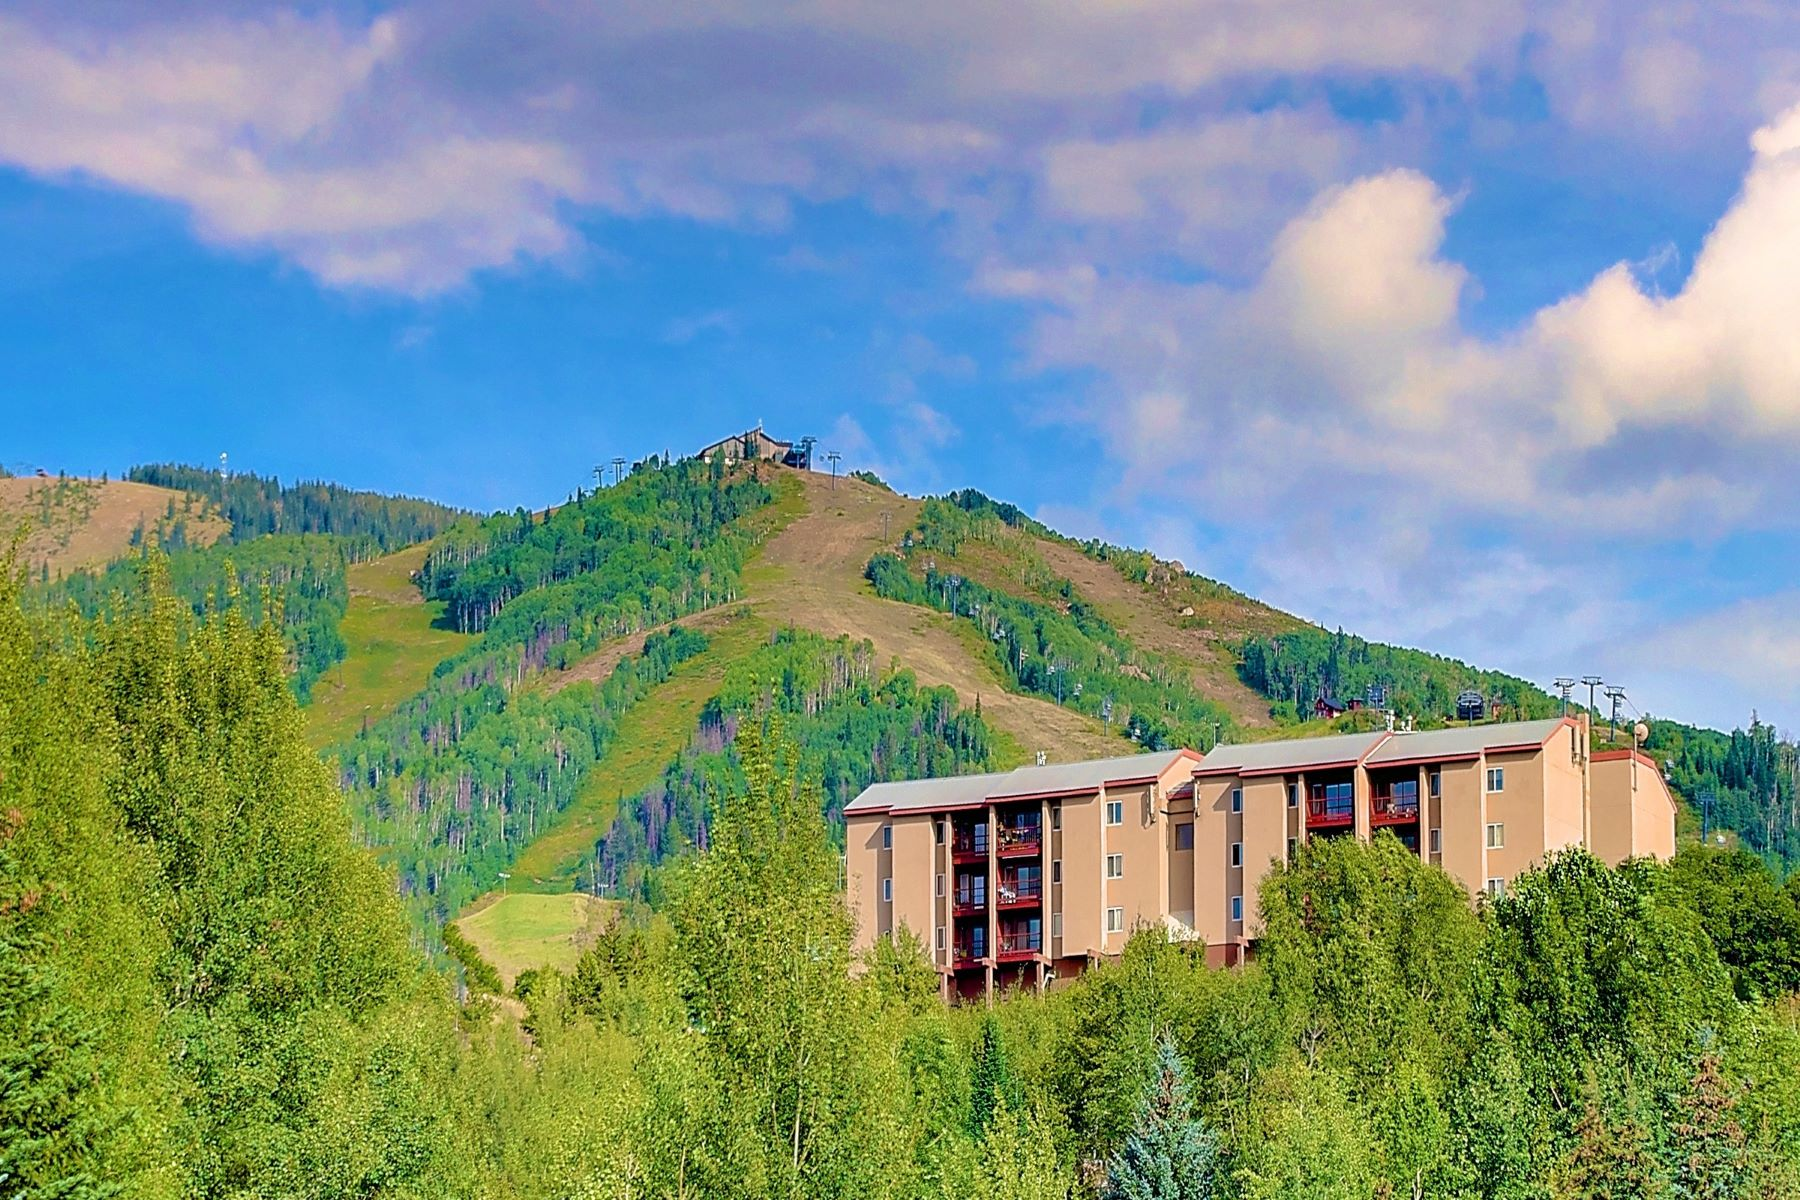 Casa Unifamiliar por un Venta en Panoramic Ski Area Views 1805 River Queen Lane #207 Steamboat Springs, Colorado 80487 Estados Unidos